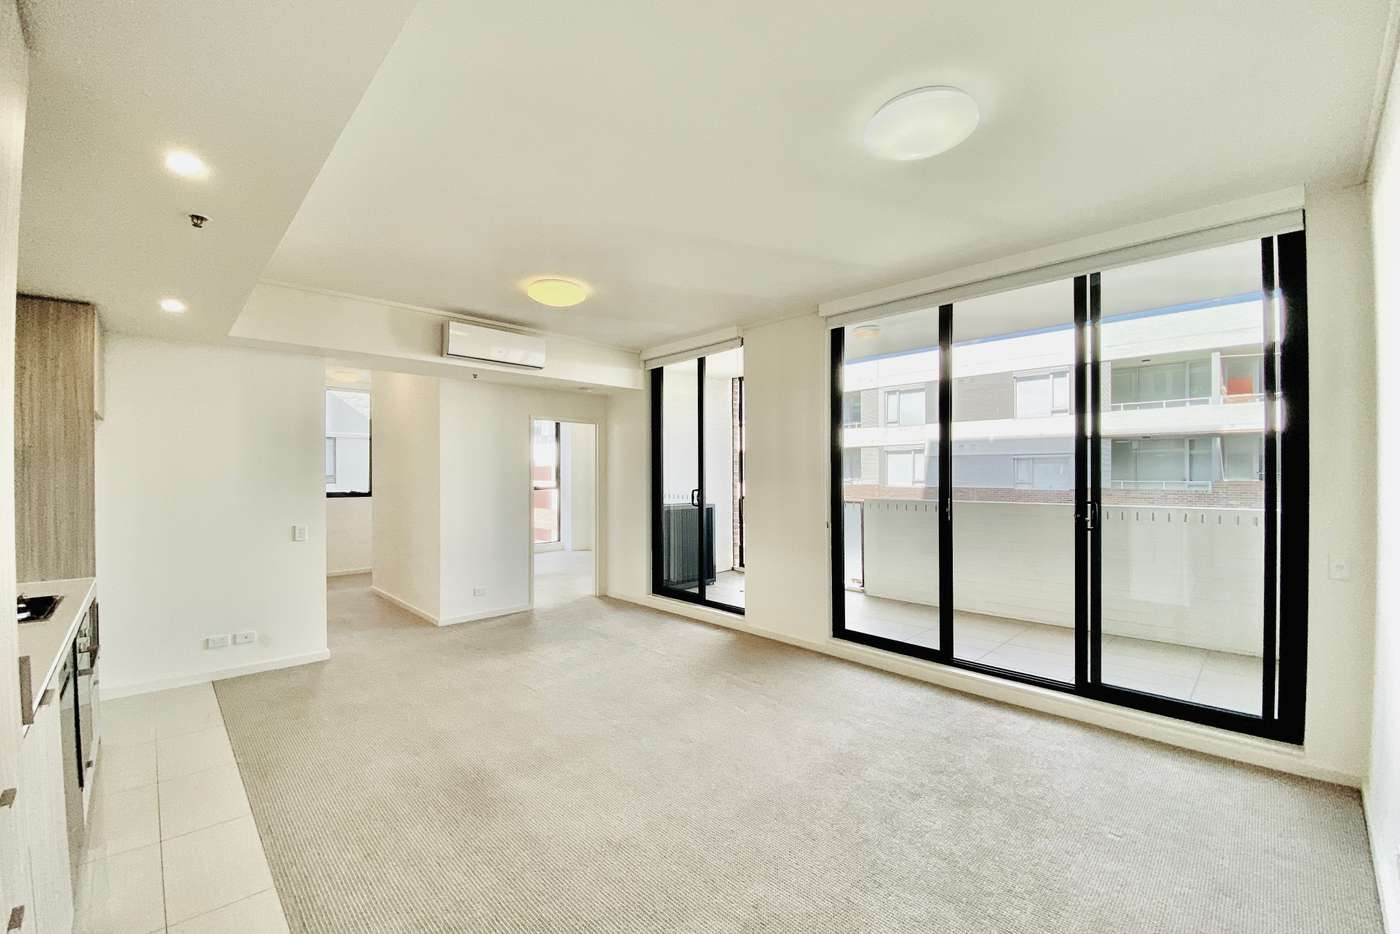 Main view of Homely apartment listing, 502/7 Washington Avenue, Riverwood NSW 2210